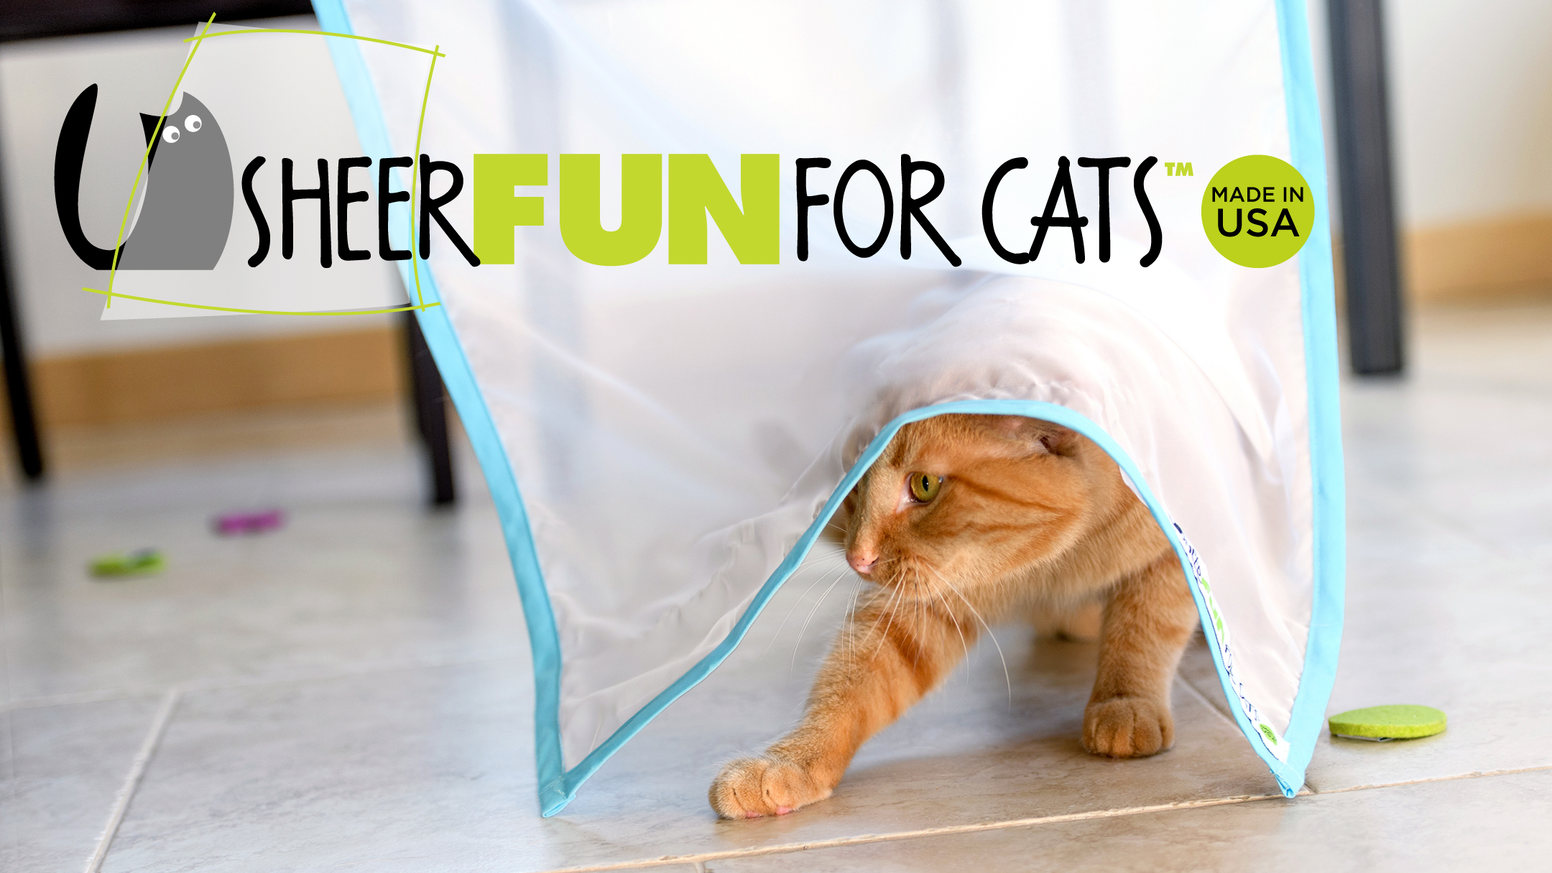 Every great hunt starts with a great hiding spot! Sheer Fun for Cats stimulates your cat's natural instincts to hunt and play.